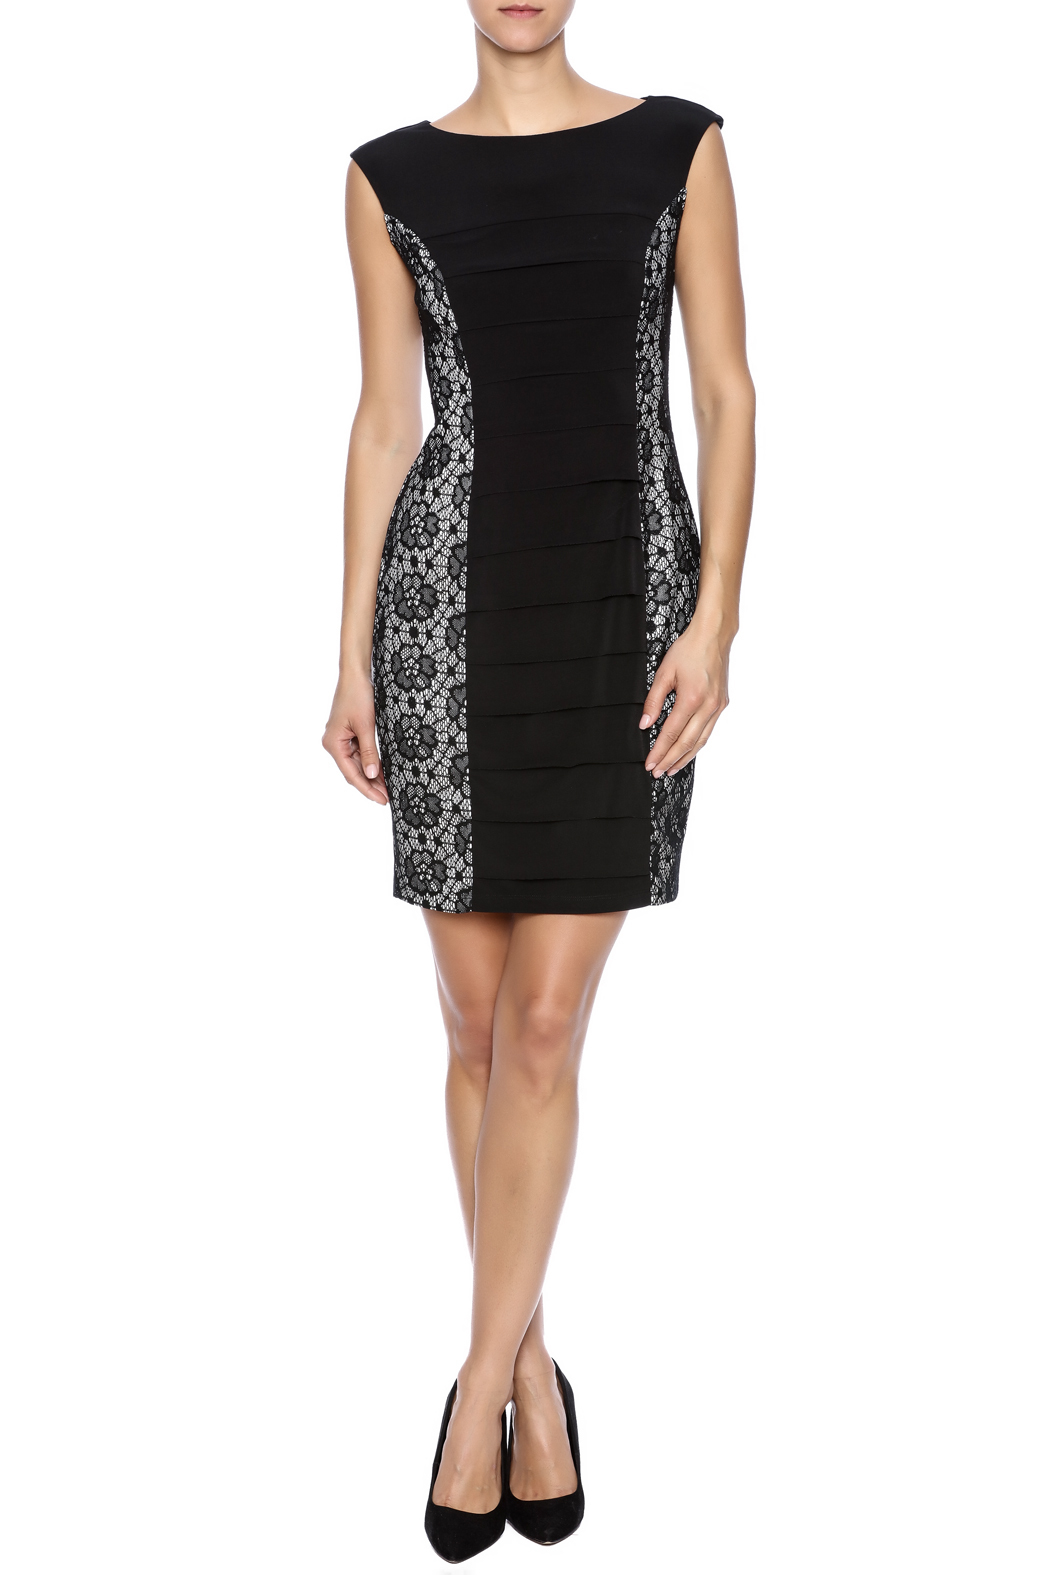 Enfocus Studio Bodycon Dress - Front Full Image